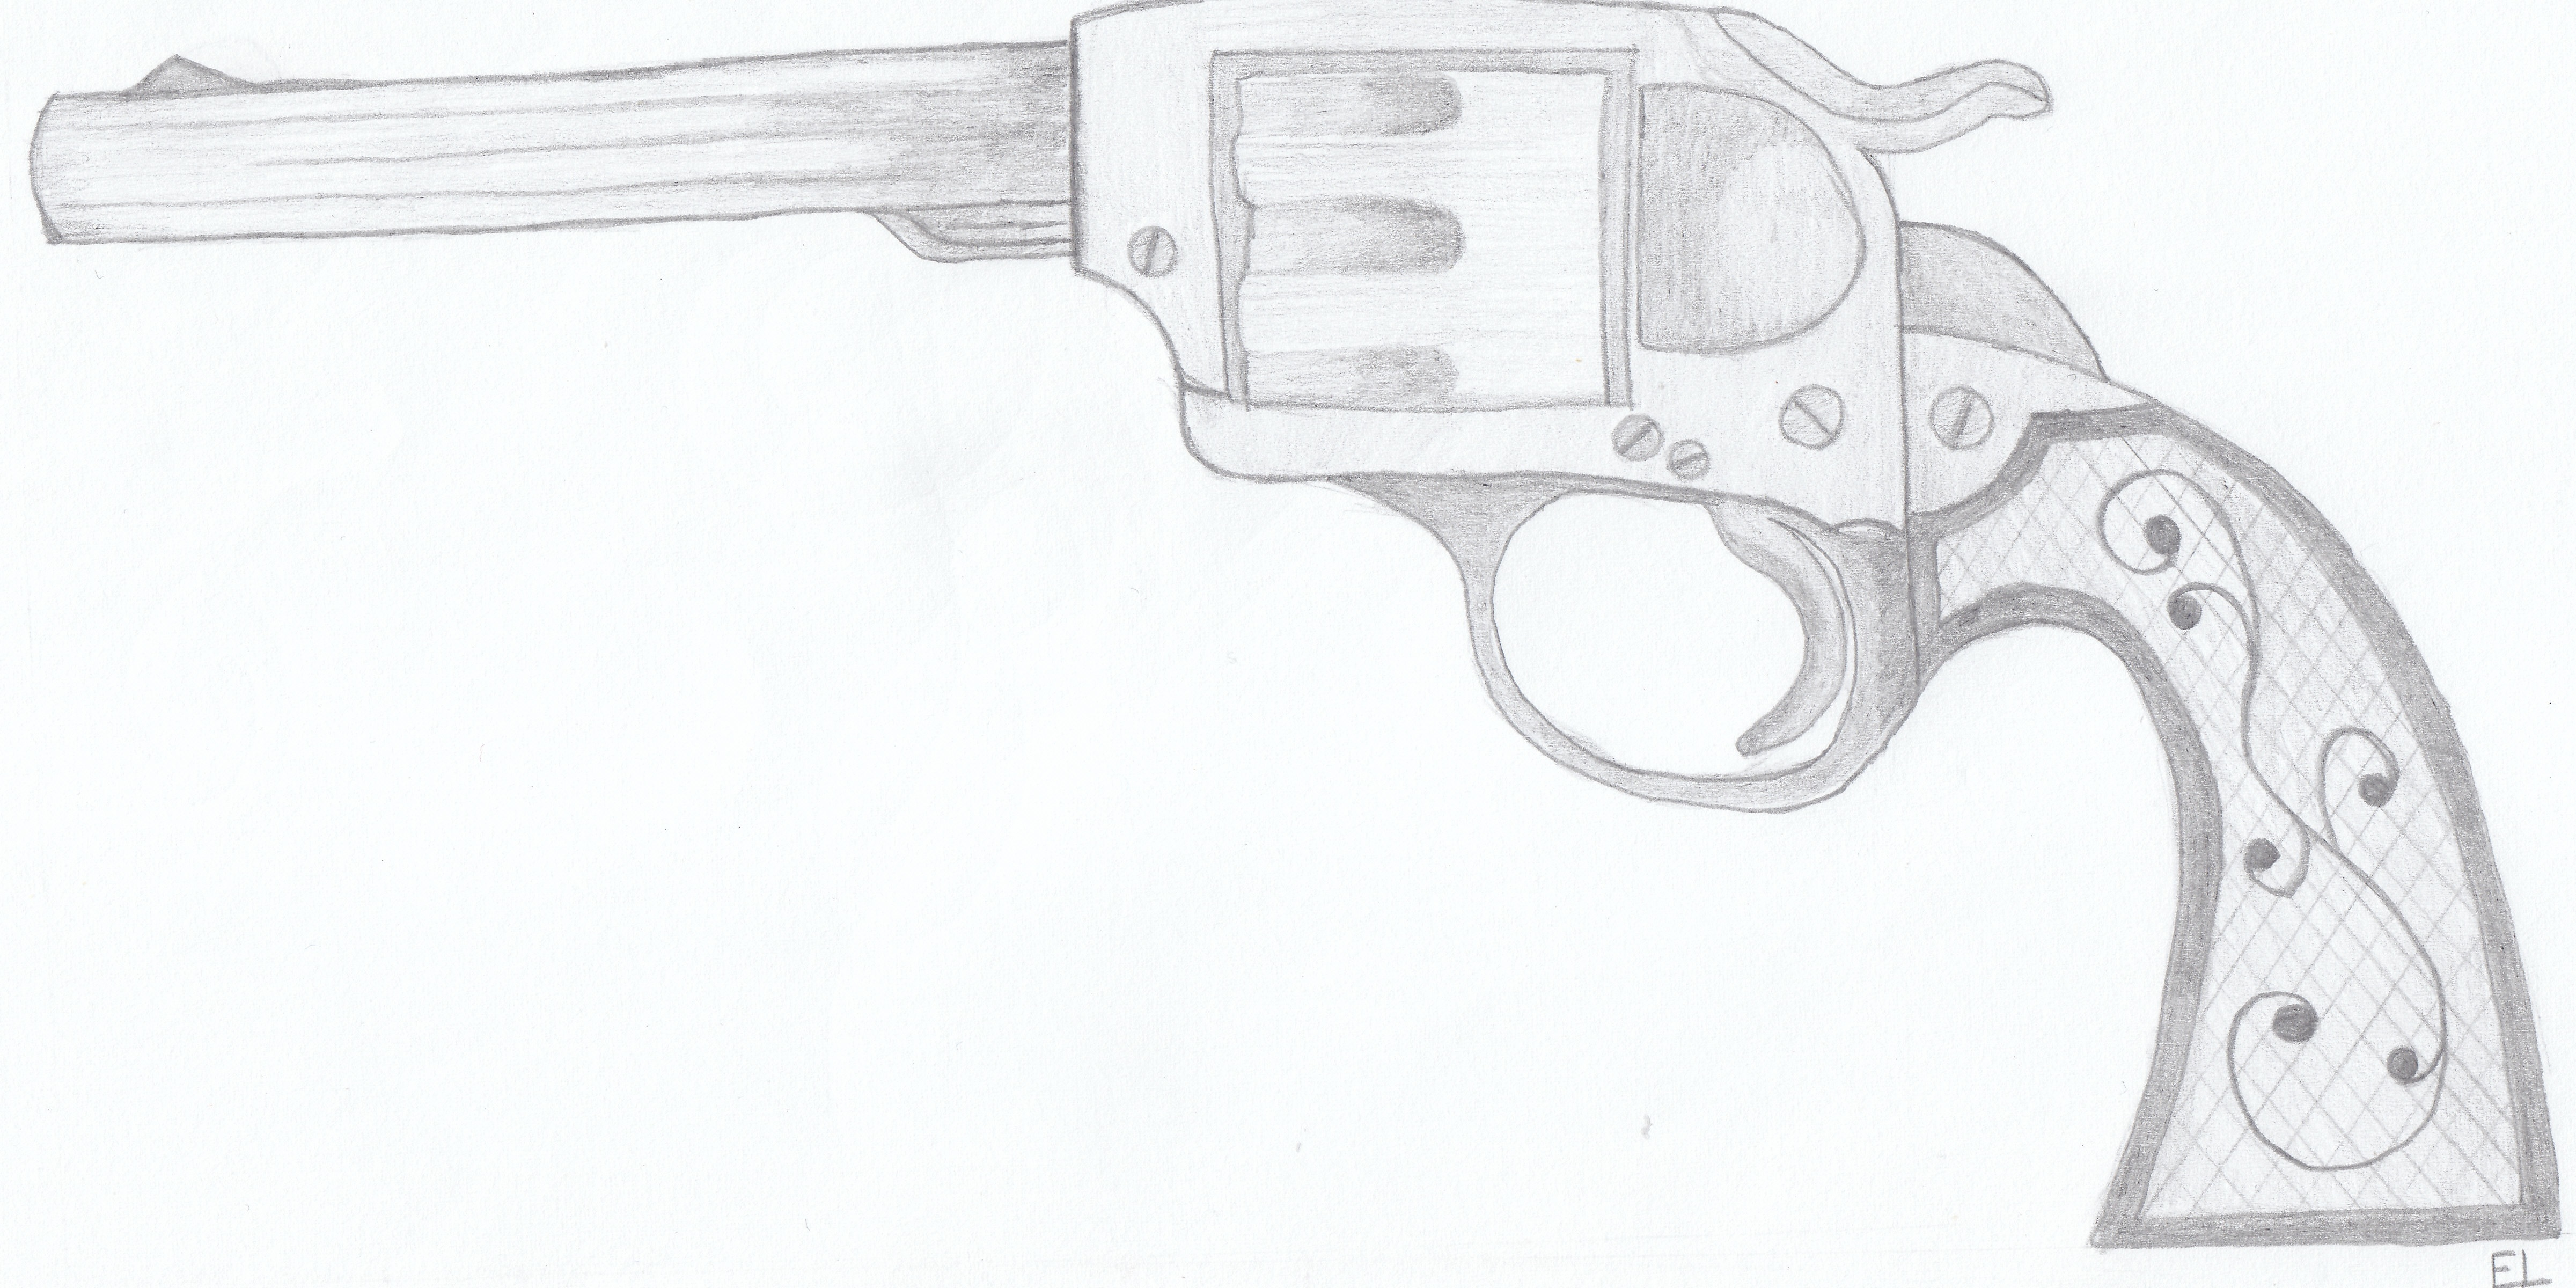 Western Pistols Drawing Western Gun Drawing600 x 344